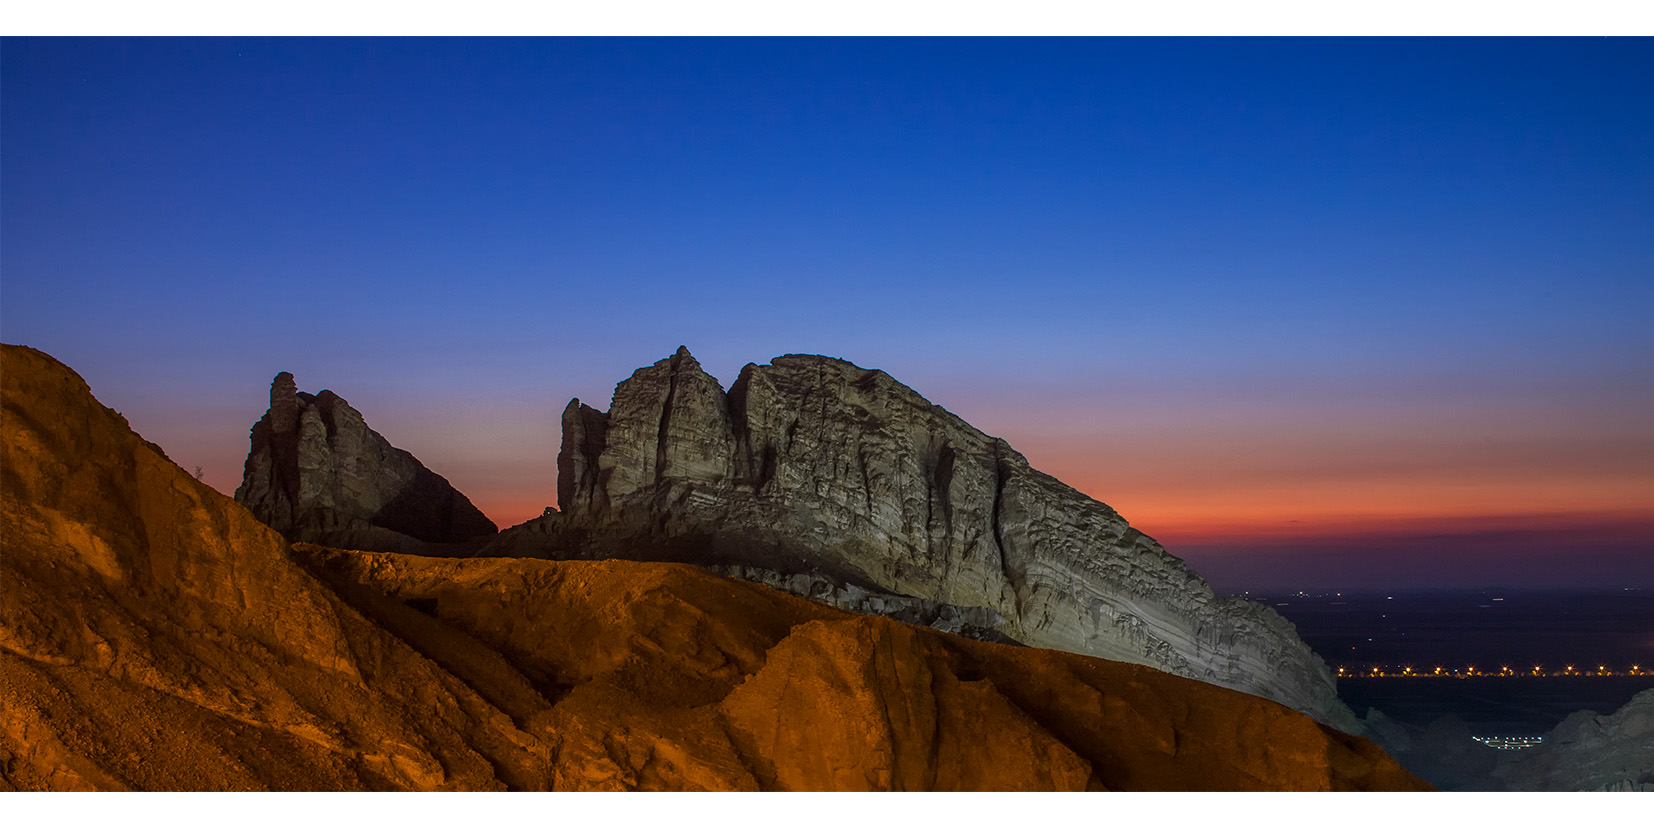 Jebel Hafeet Moutains